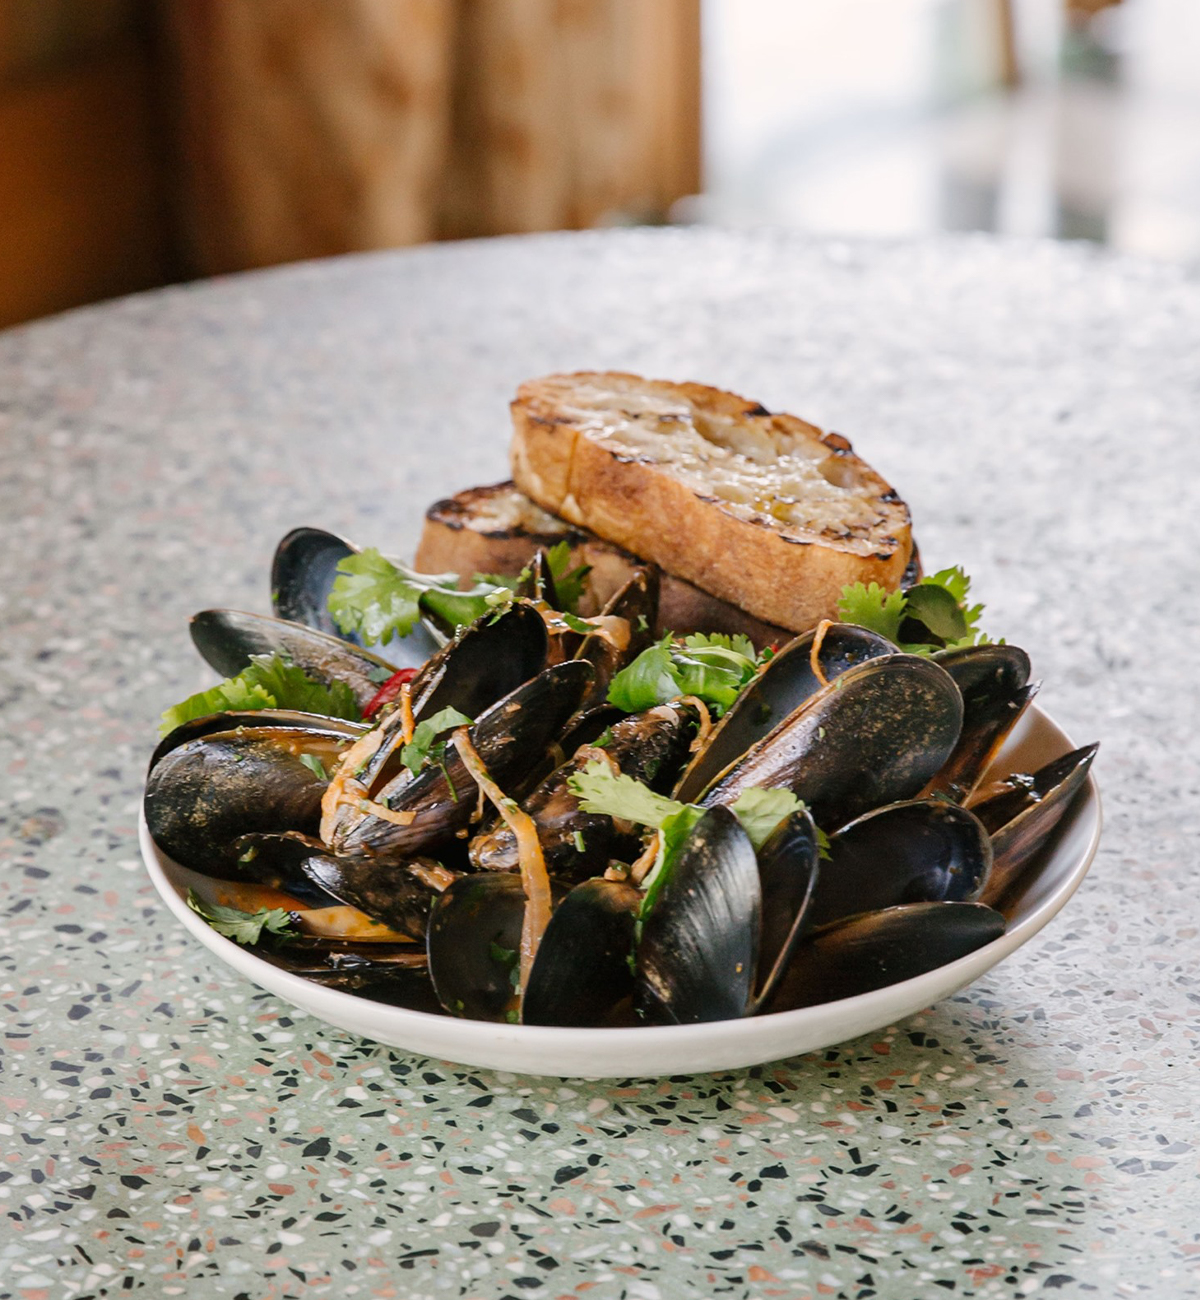 a bowl of mussels topped with crusty bread